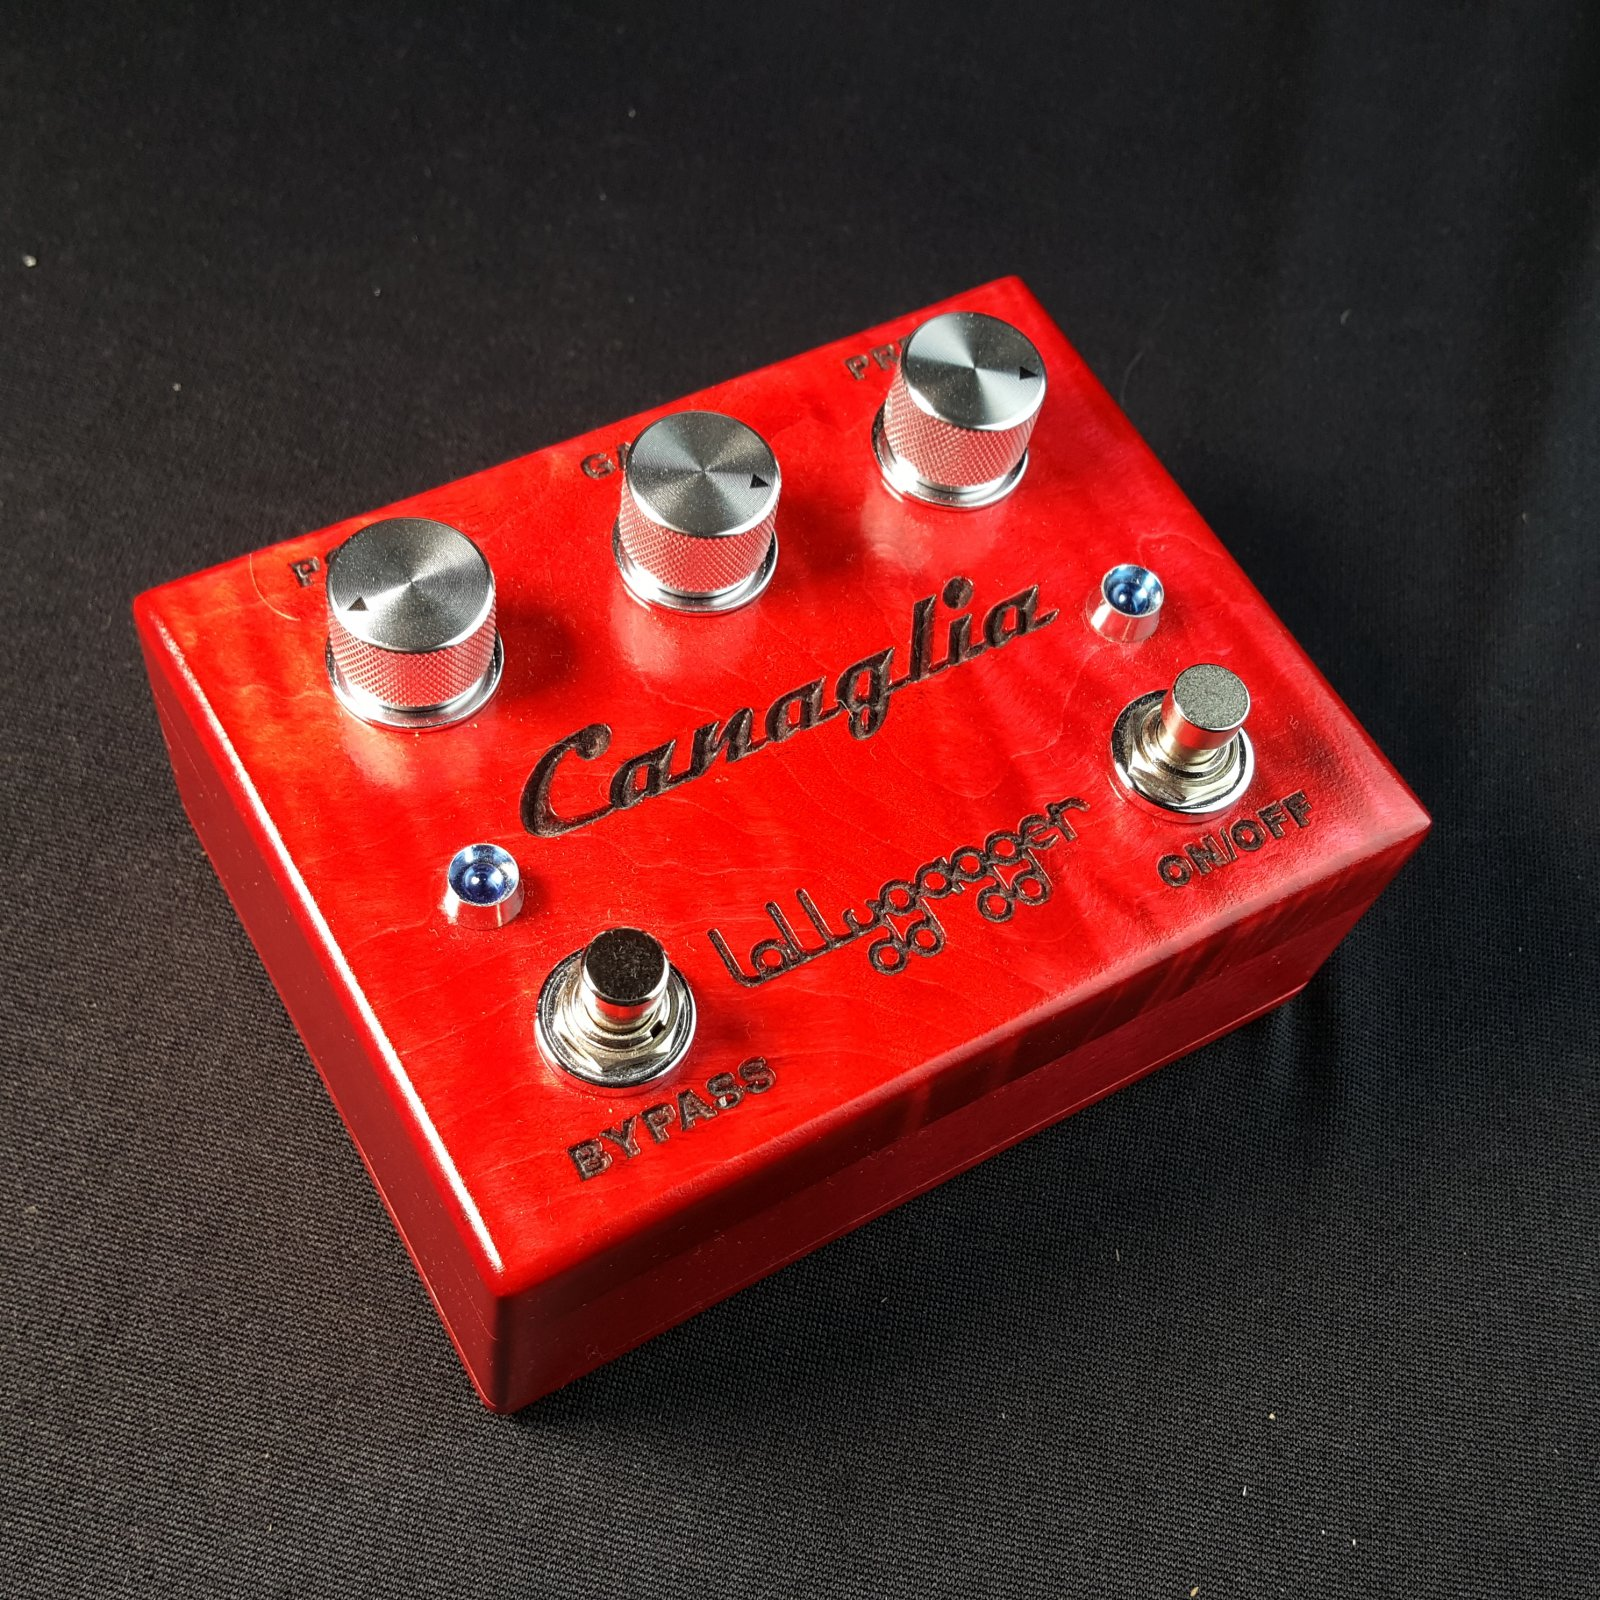 USED Lollygagger Canaglia Drive Pedal Bordeaux Red